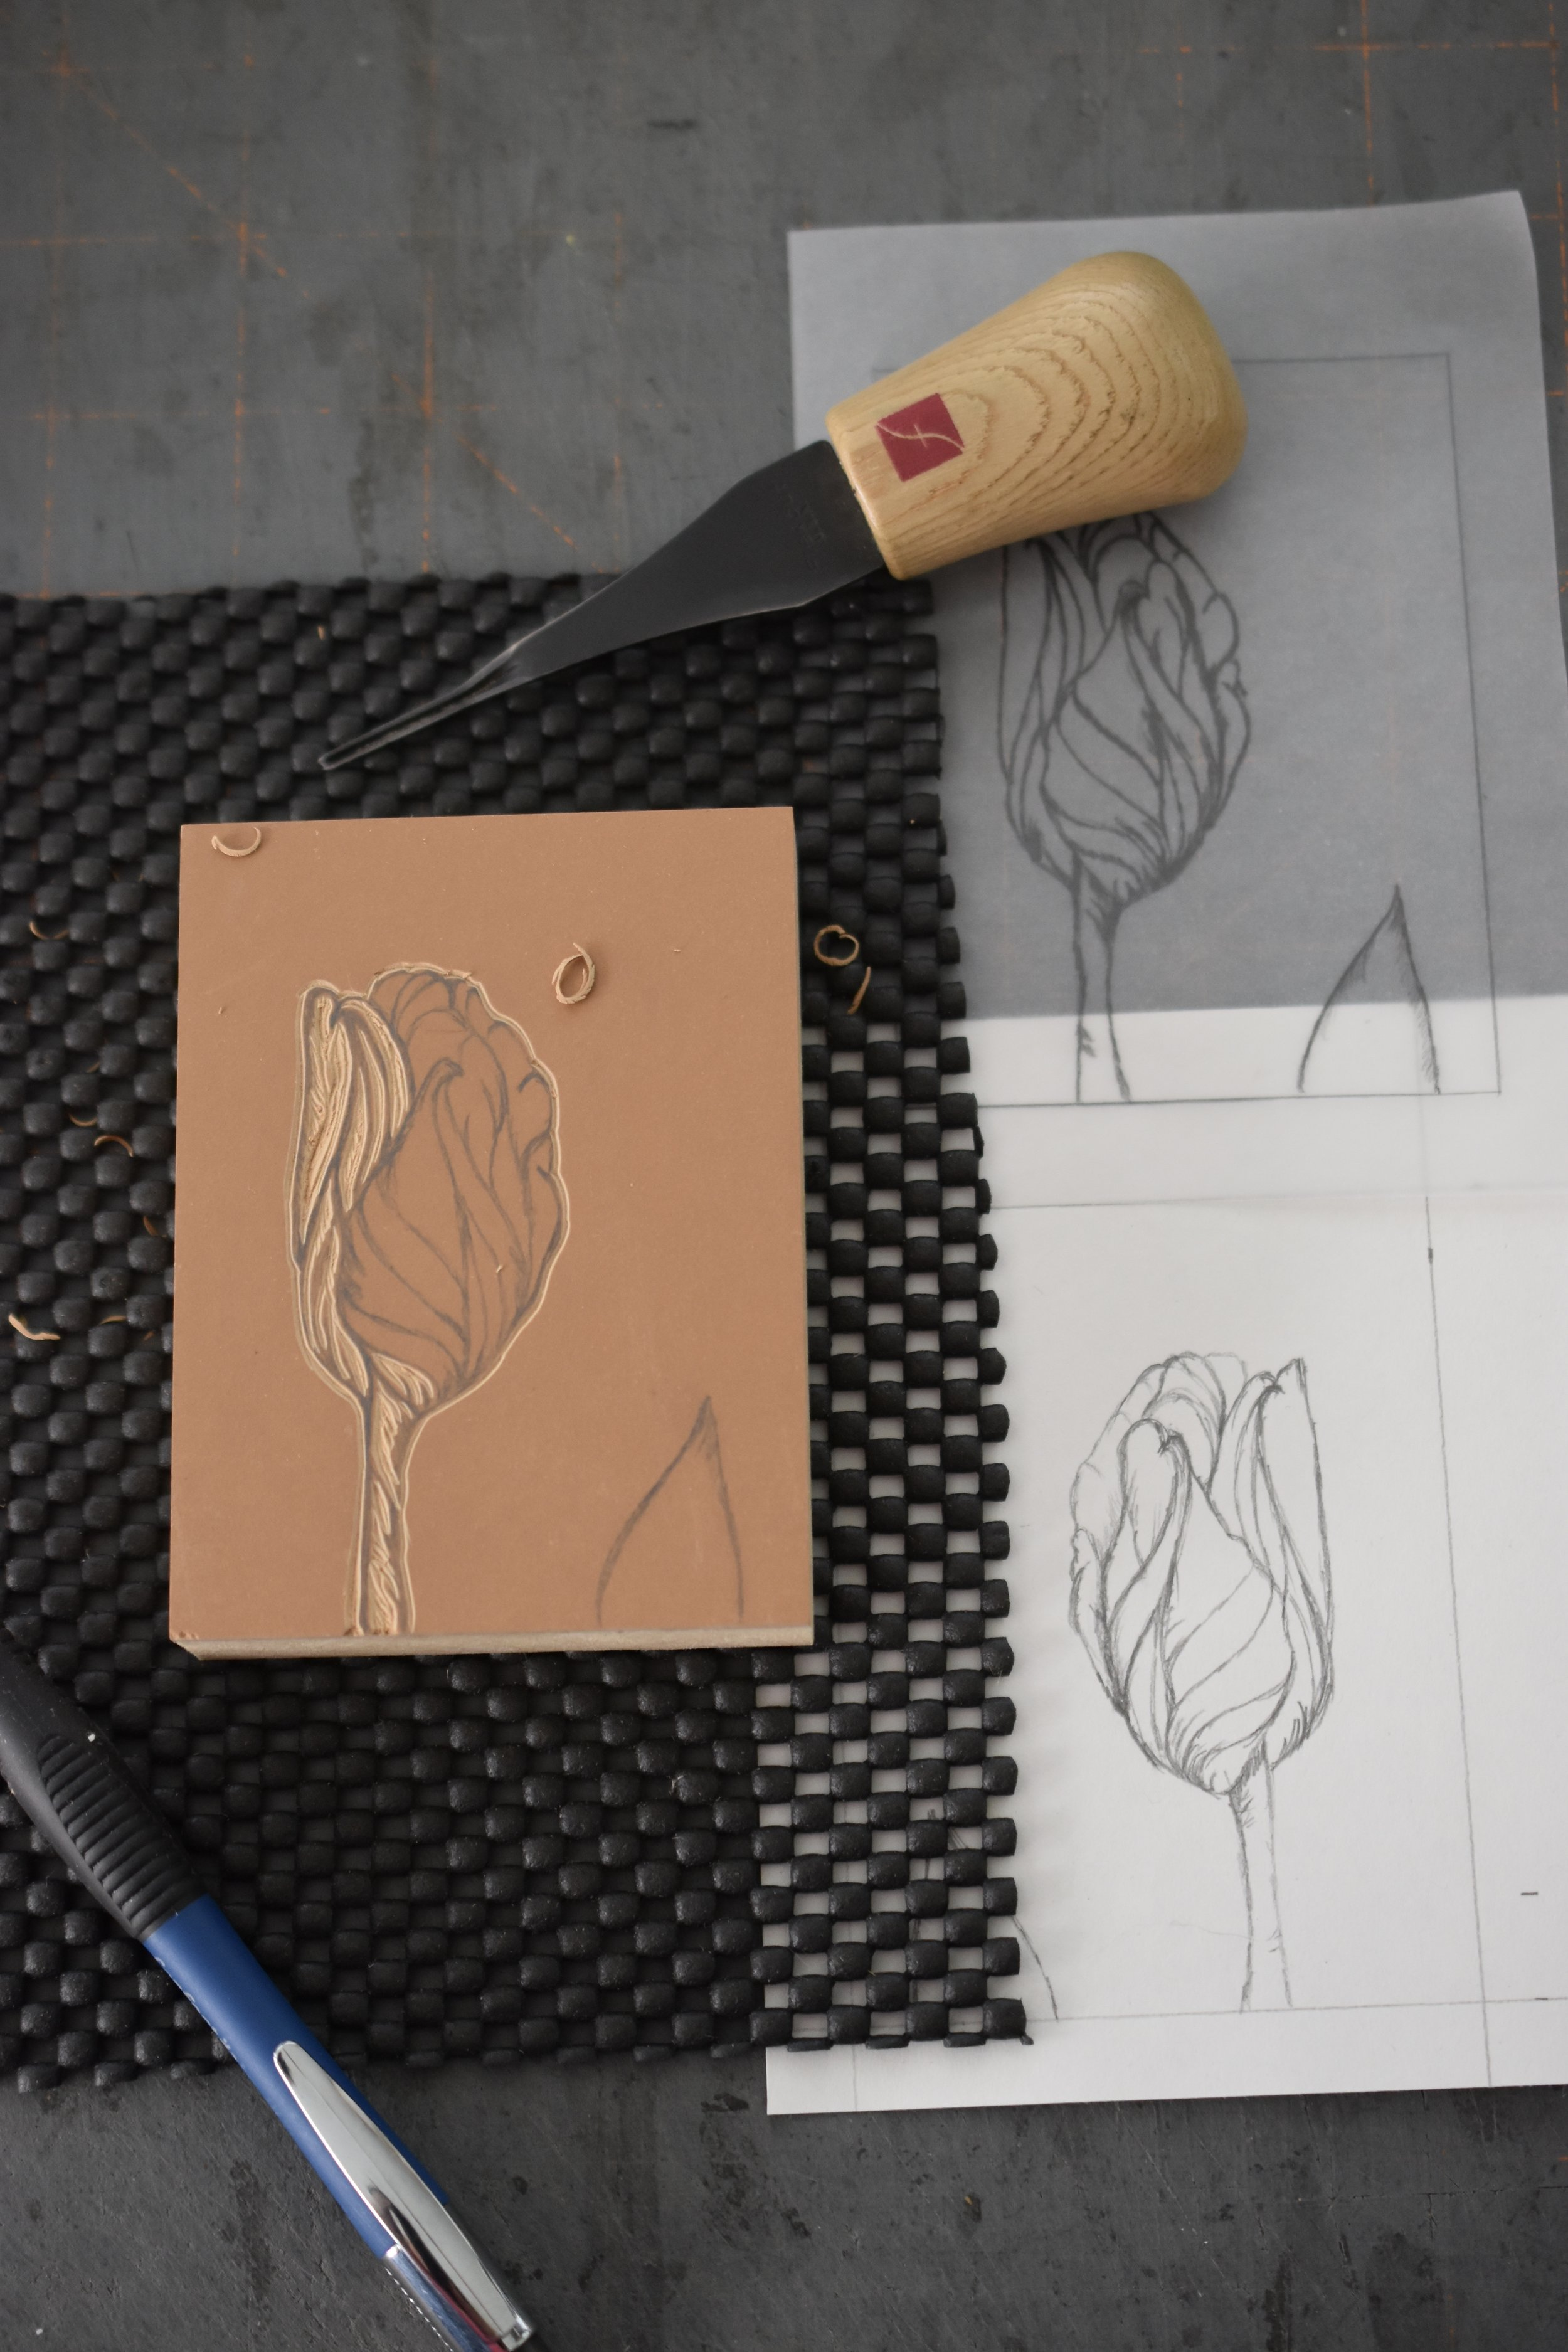 I designed and printed a third card based on the beautiful tulips in our gardens (see earlier blog post). The sketch has been transferred to the block and carving is underway. This worked perfectly for a birthday card.